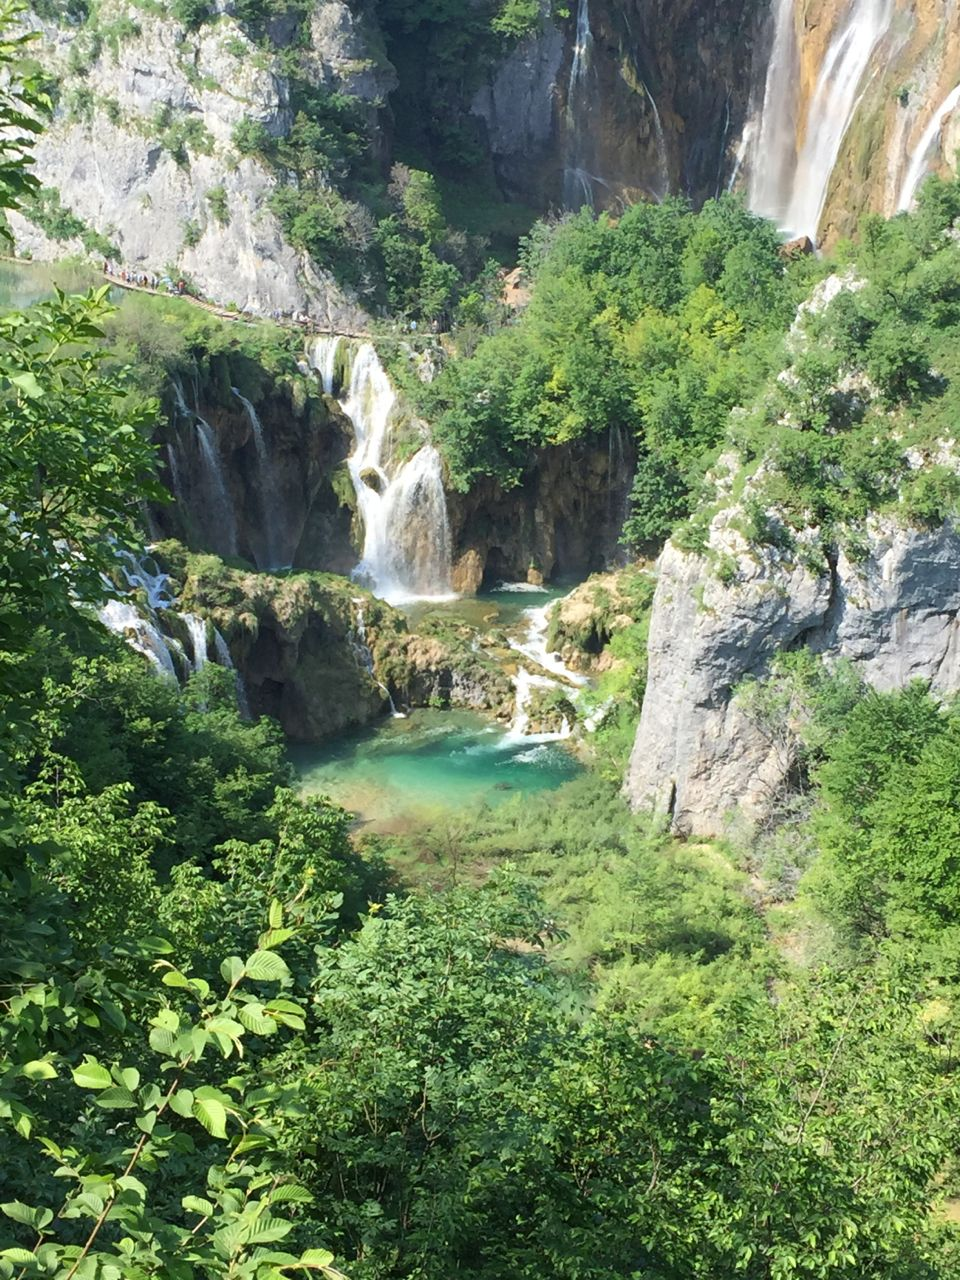 The famous Plitvice National Park draws more than a million visitors a year.